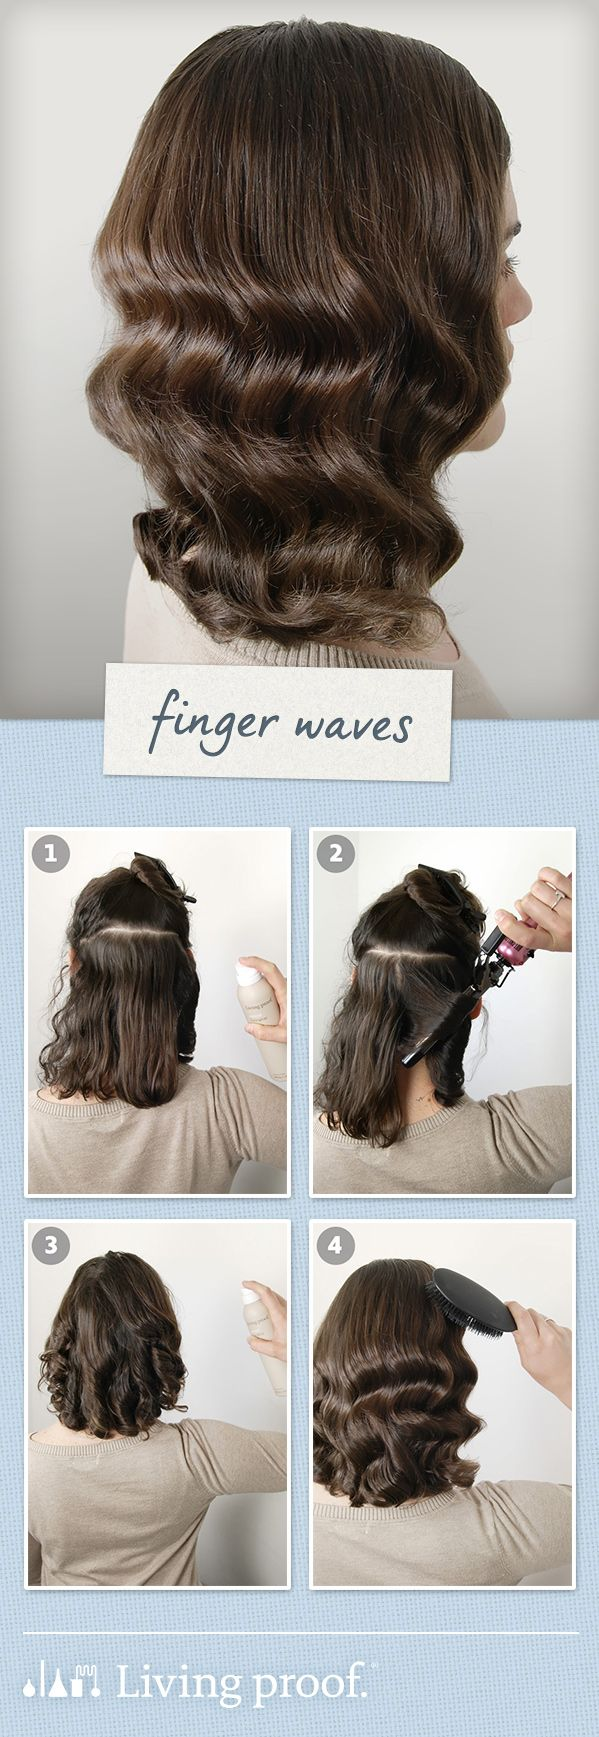 Finger waves are extremely elegant and surprisingly easy to create yourself. Click through for tips and tricks to create this 1920's flapper style.